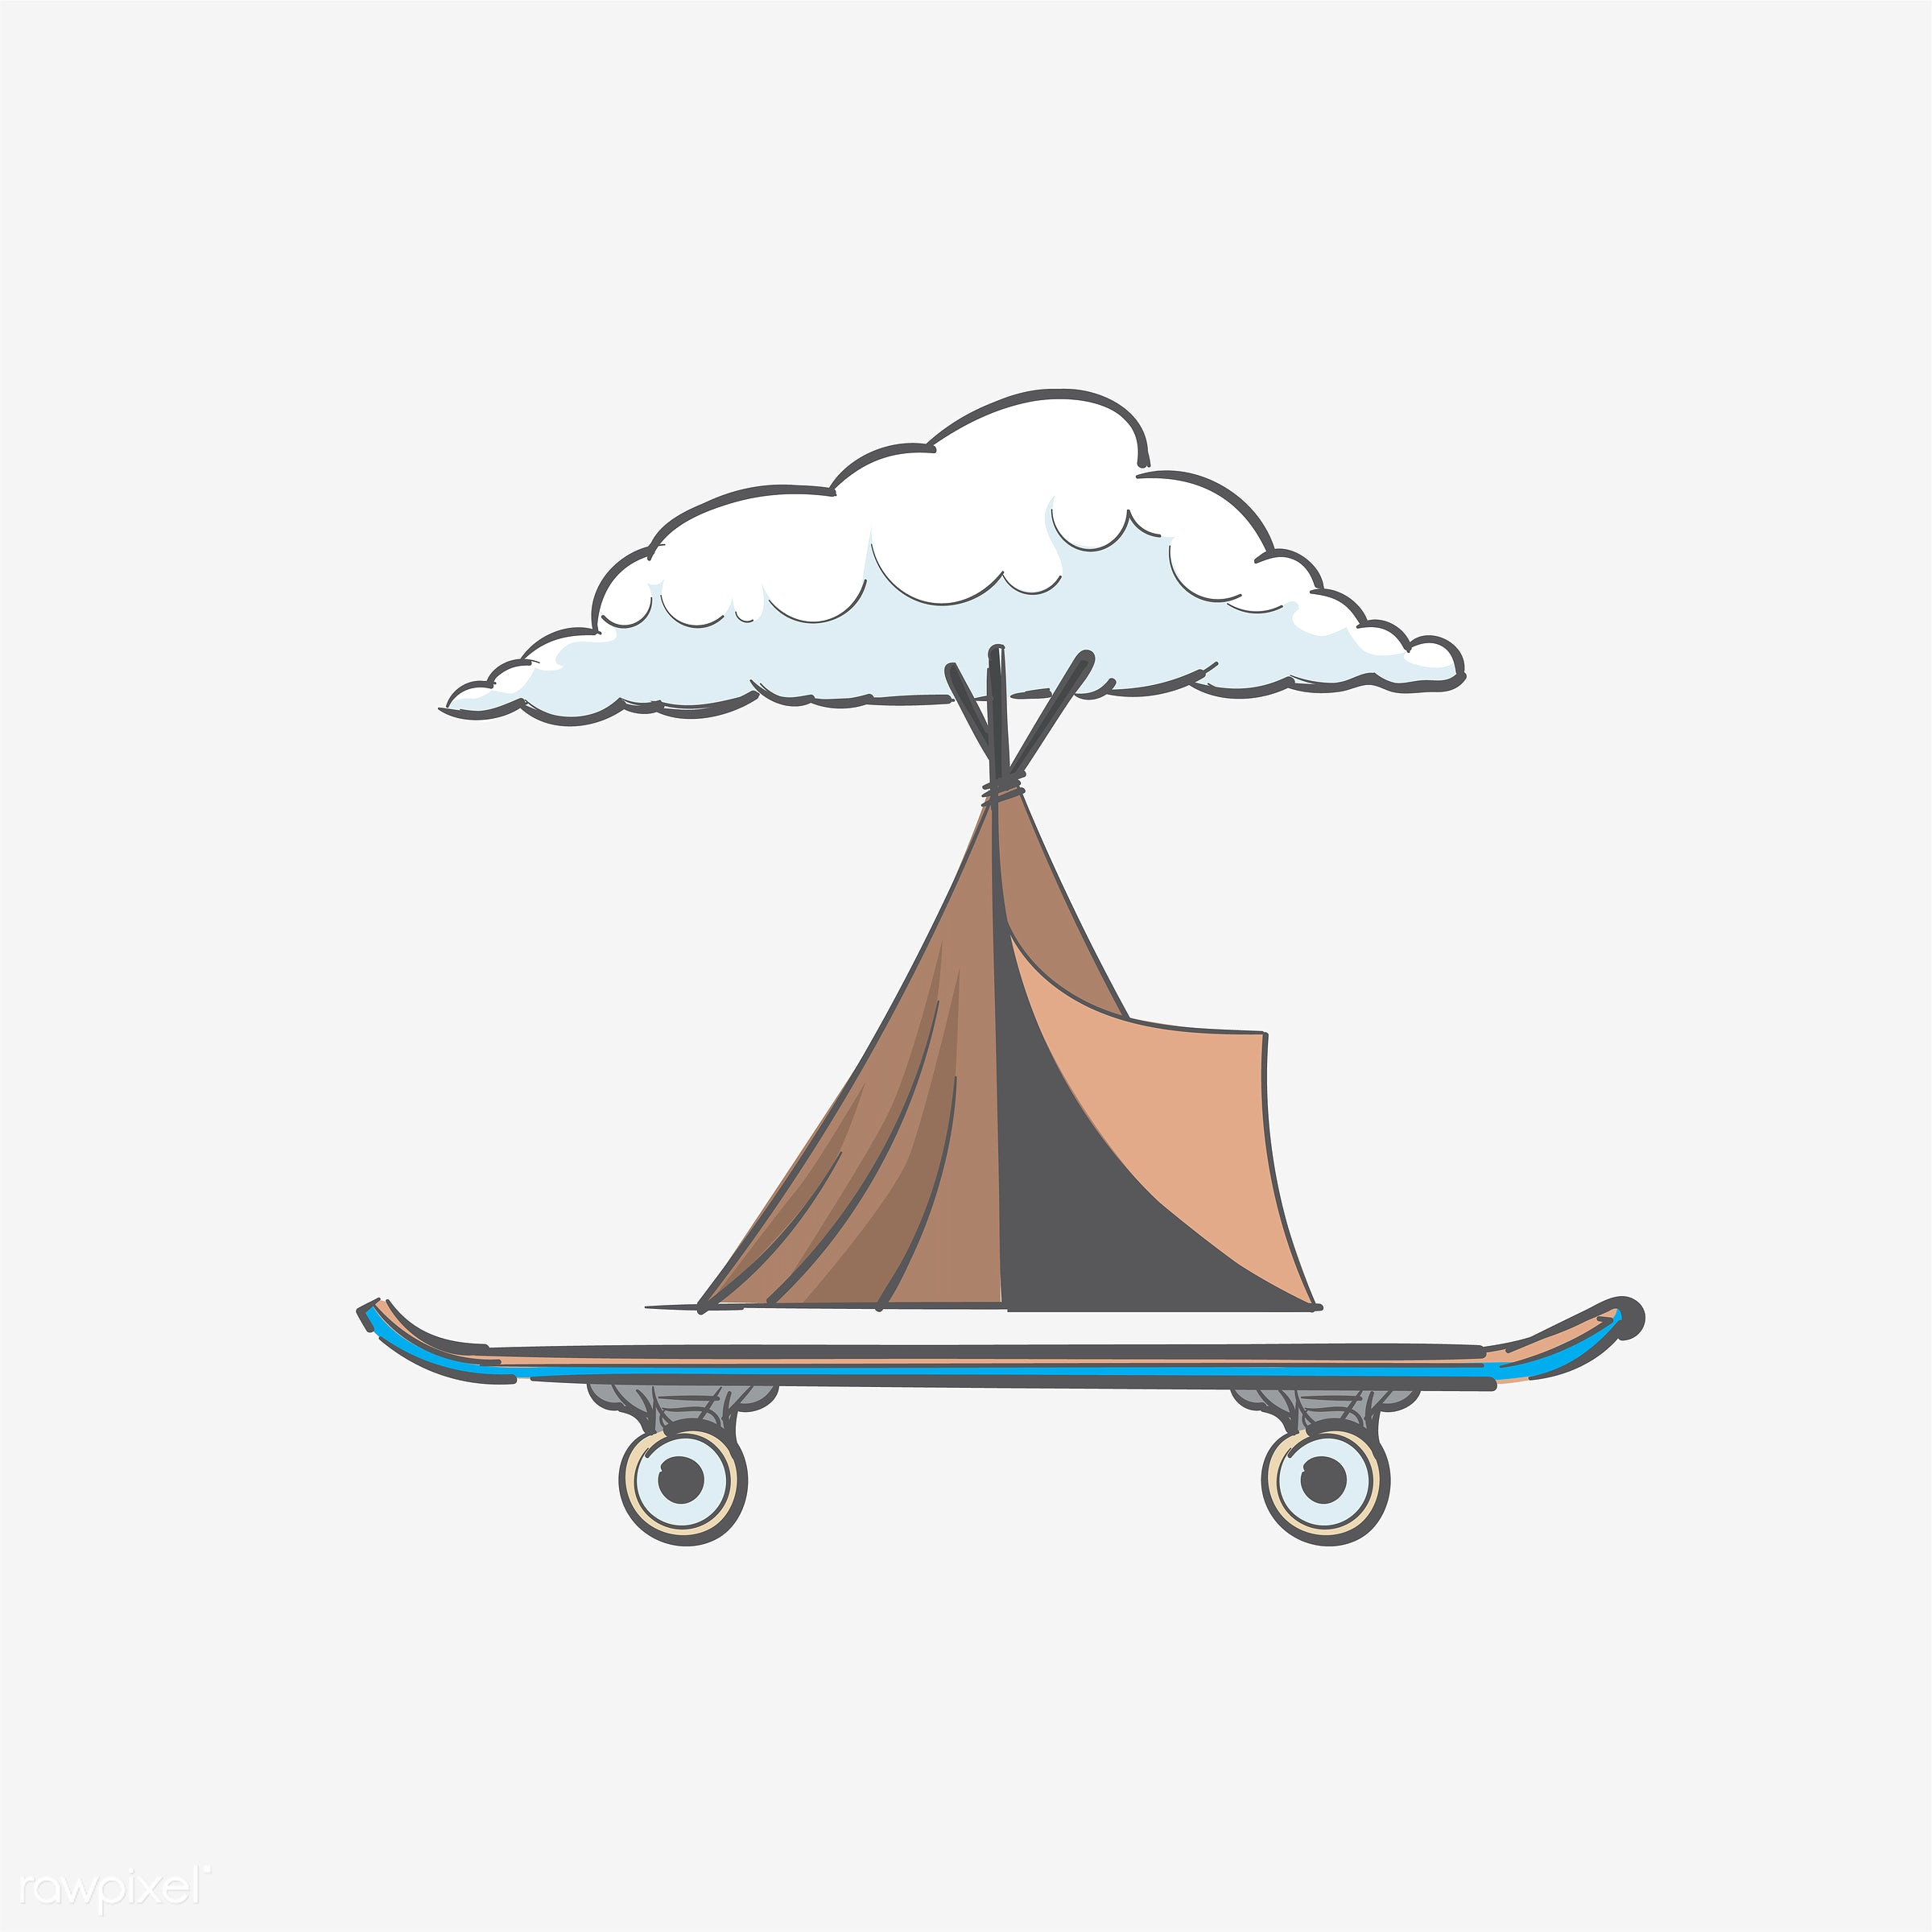 Hand drawing illustration of hipster style concept - art, artwork, camp, camper, camping, cool, creative, creativity, design...